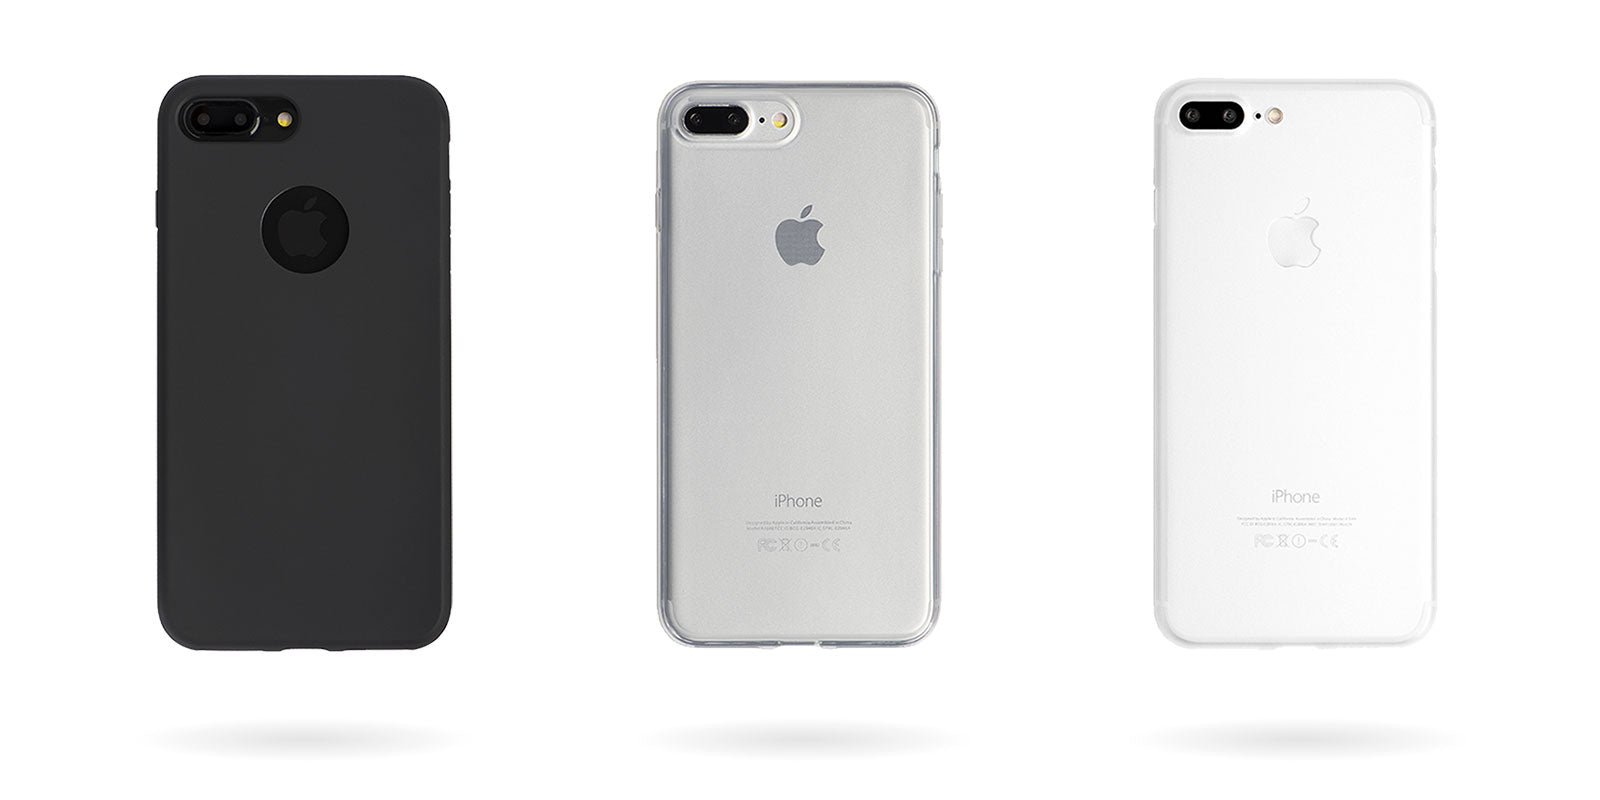 totallee's iphone case collection, including the slim matte black doberman, the thin transparent spy, and the ultra thin white scarf